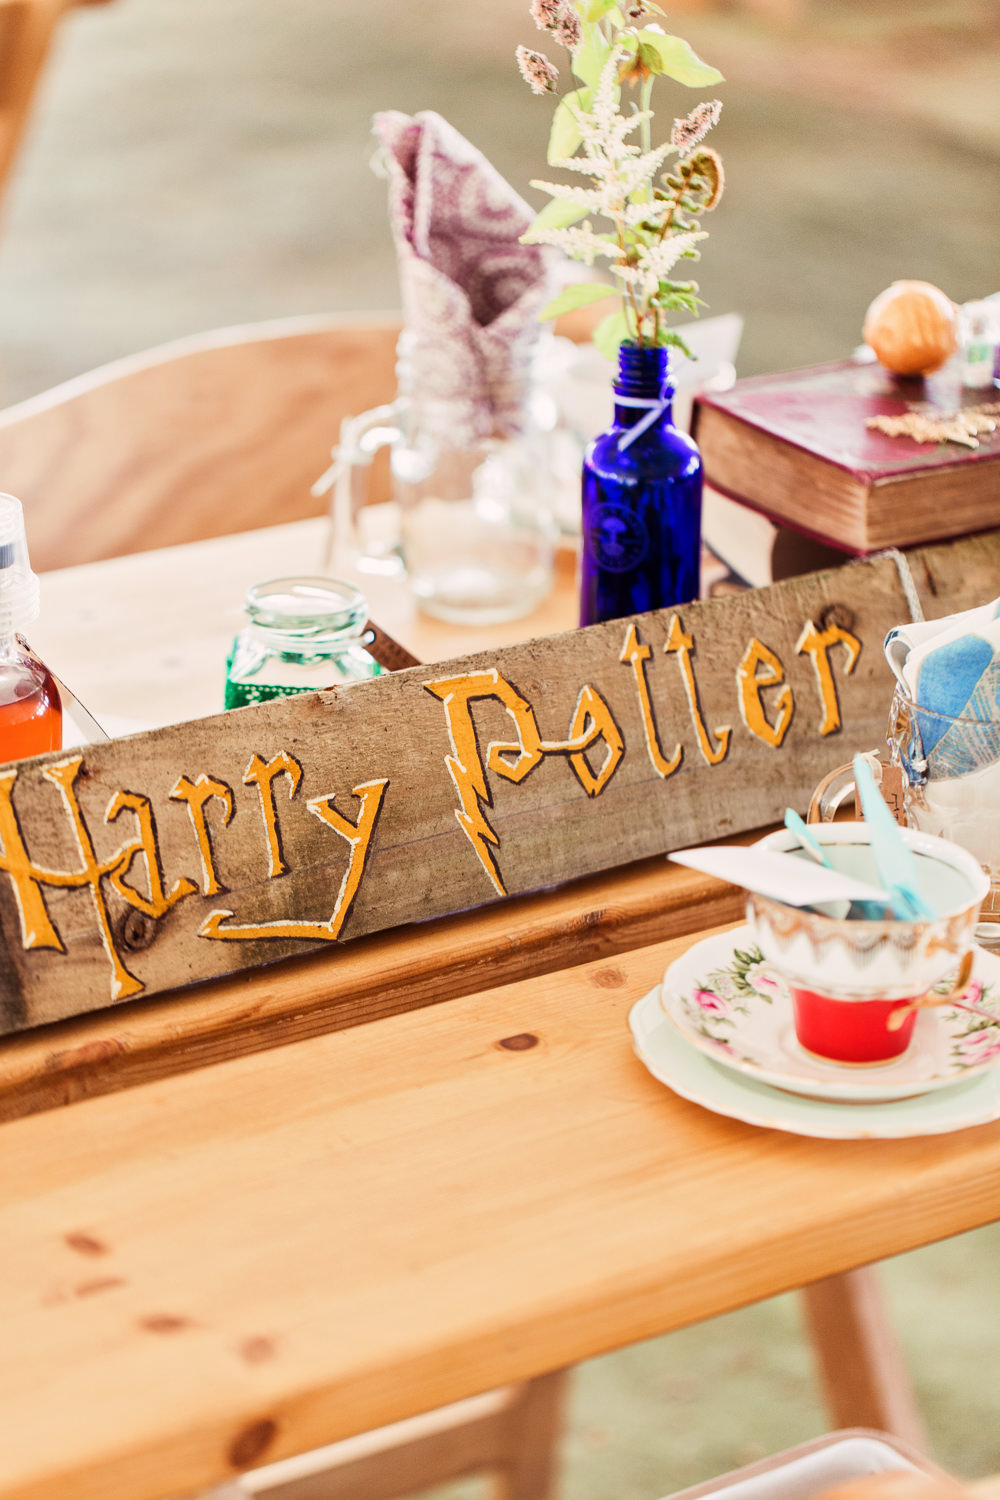 Harry Potter Handpainted Table Sign Vintage Tea Set China Festival Wedding Mismatched Country Camilla Lucinda Photography